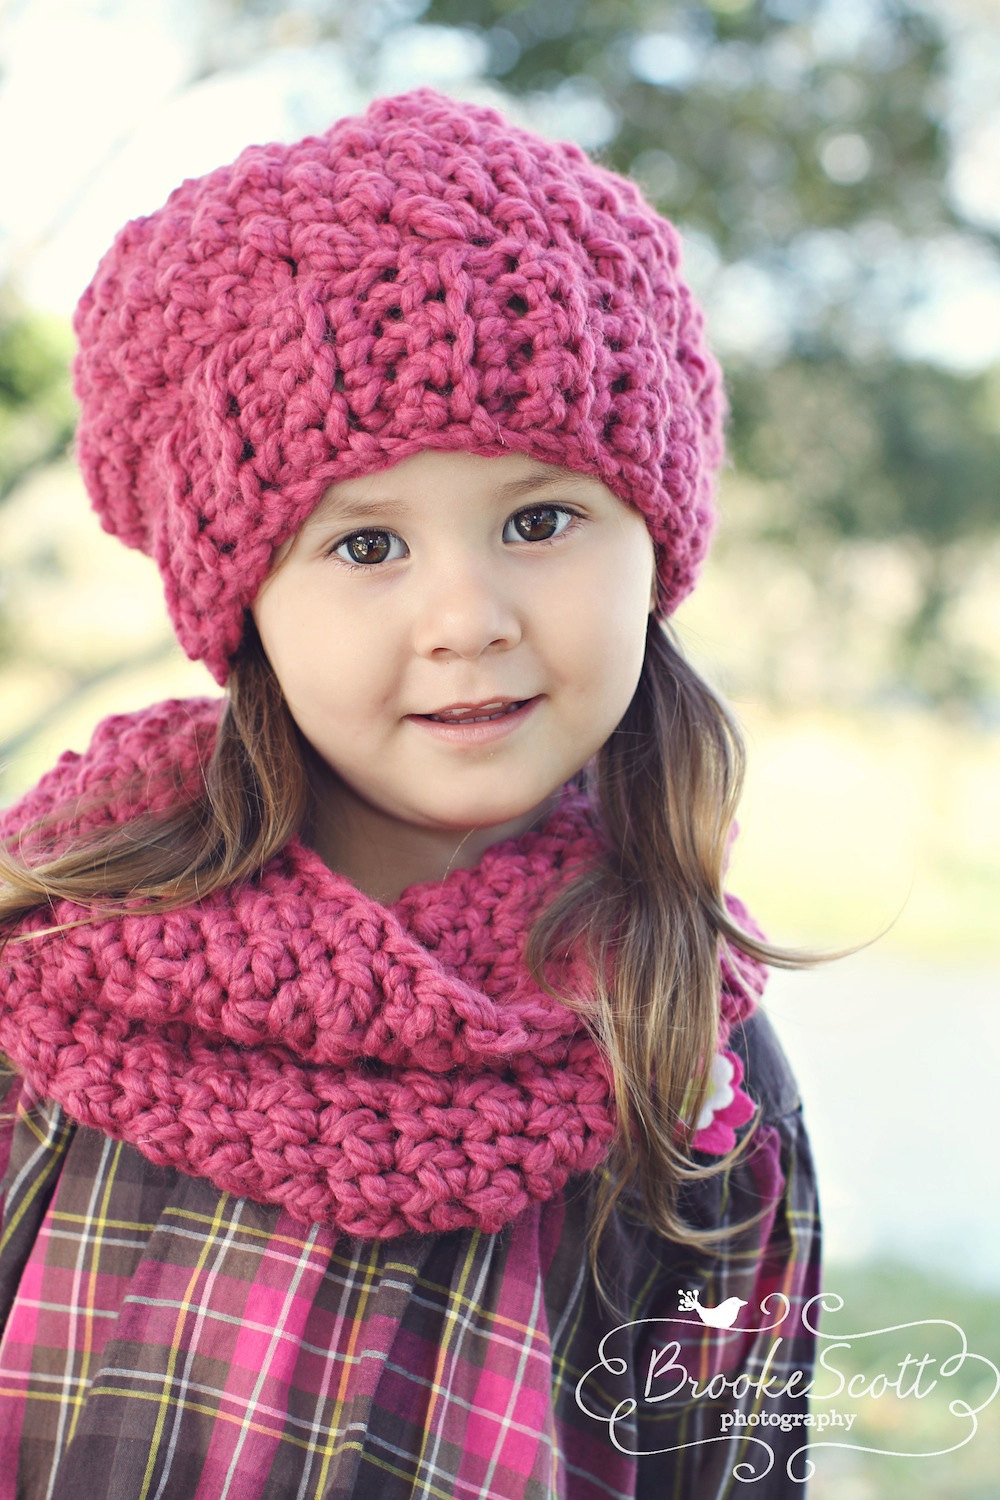 Inspirational Child S Infinity Scarf Crochet Pattern Crochet Kids Scarf Of New 9 Cool Crochet Scarf Patterns Crochet Kids Scarf